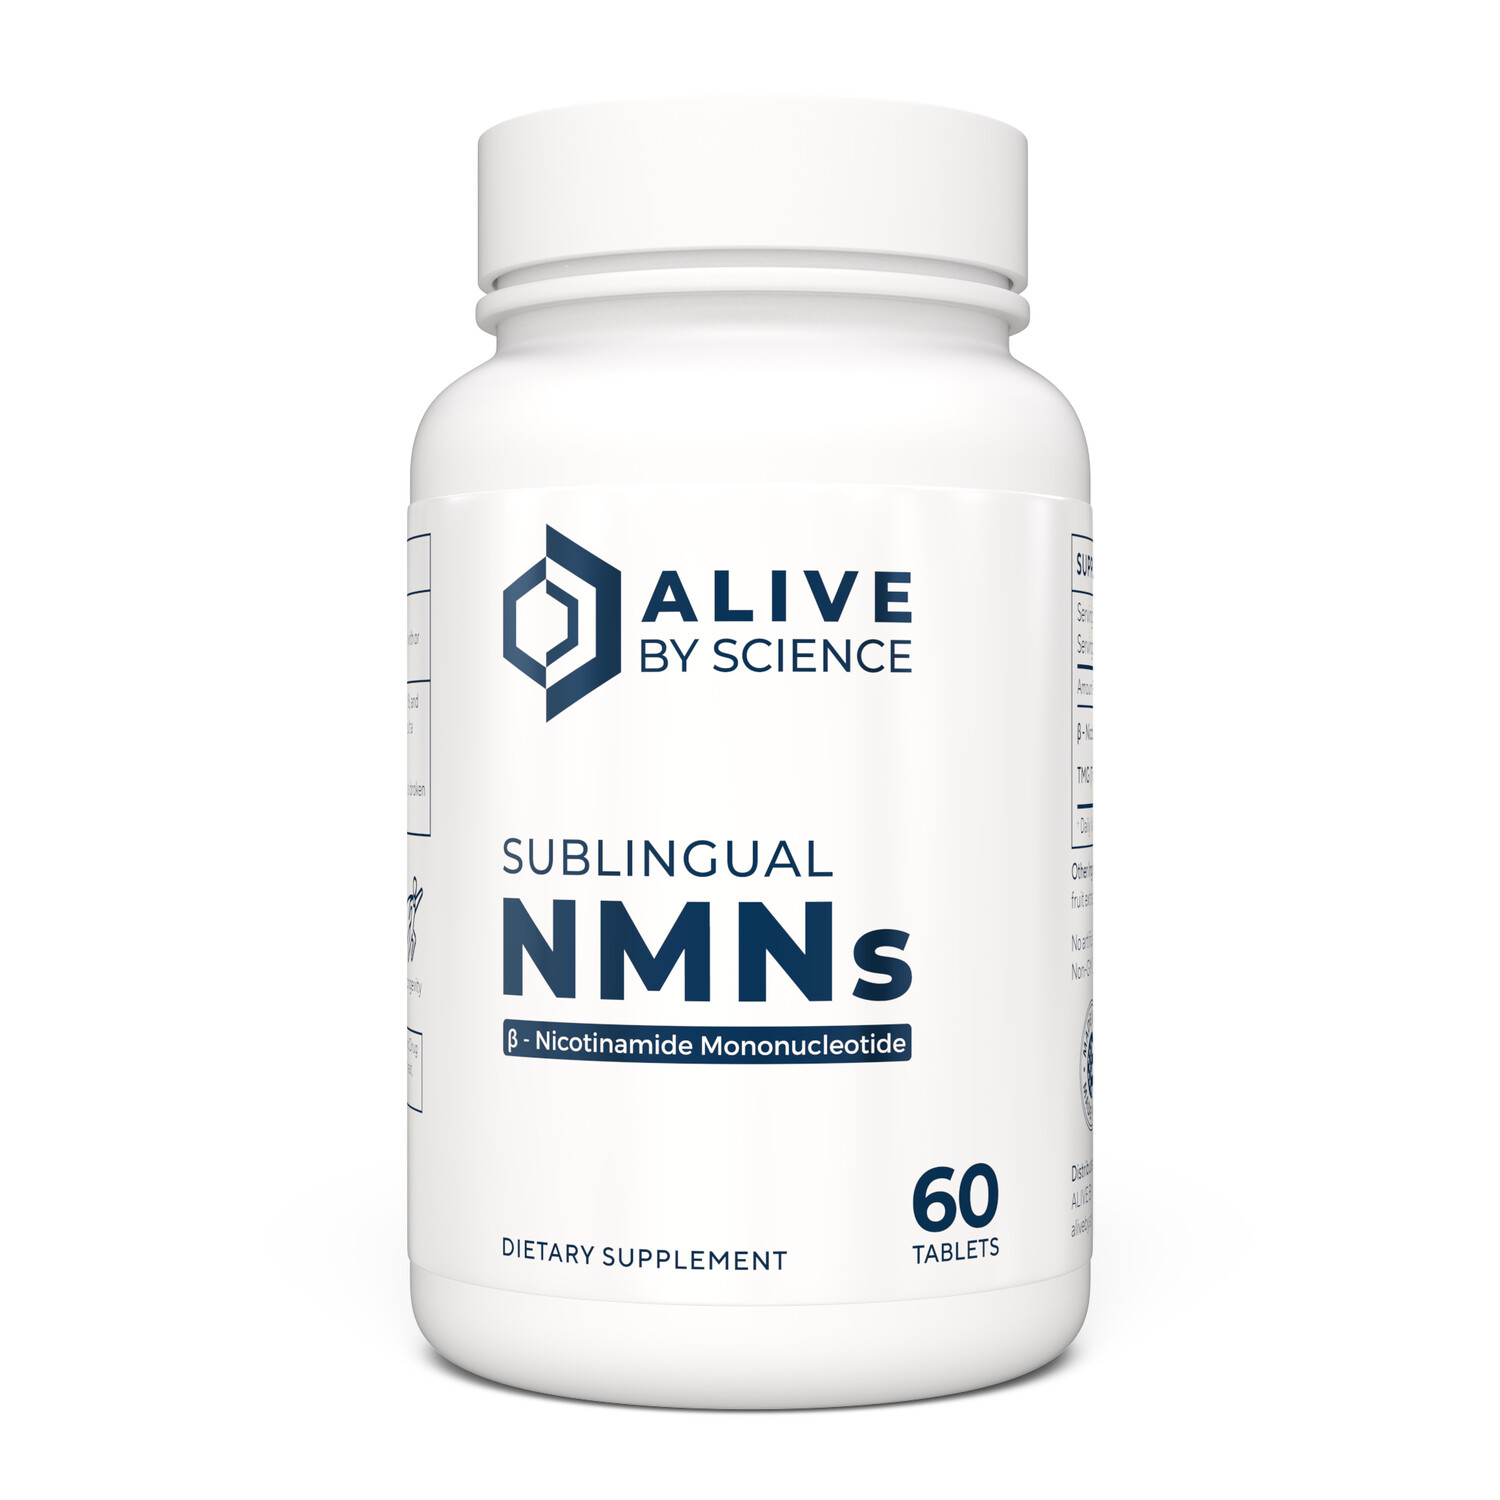 NMNs – 60 ct Sublingual Tablets